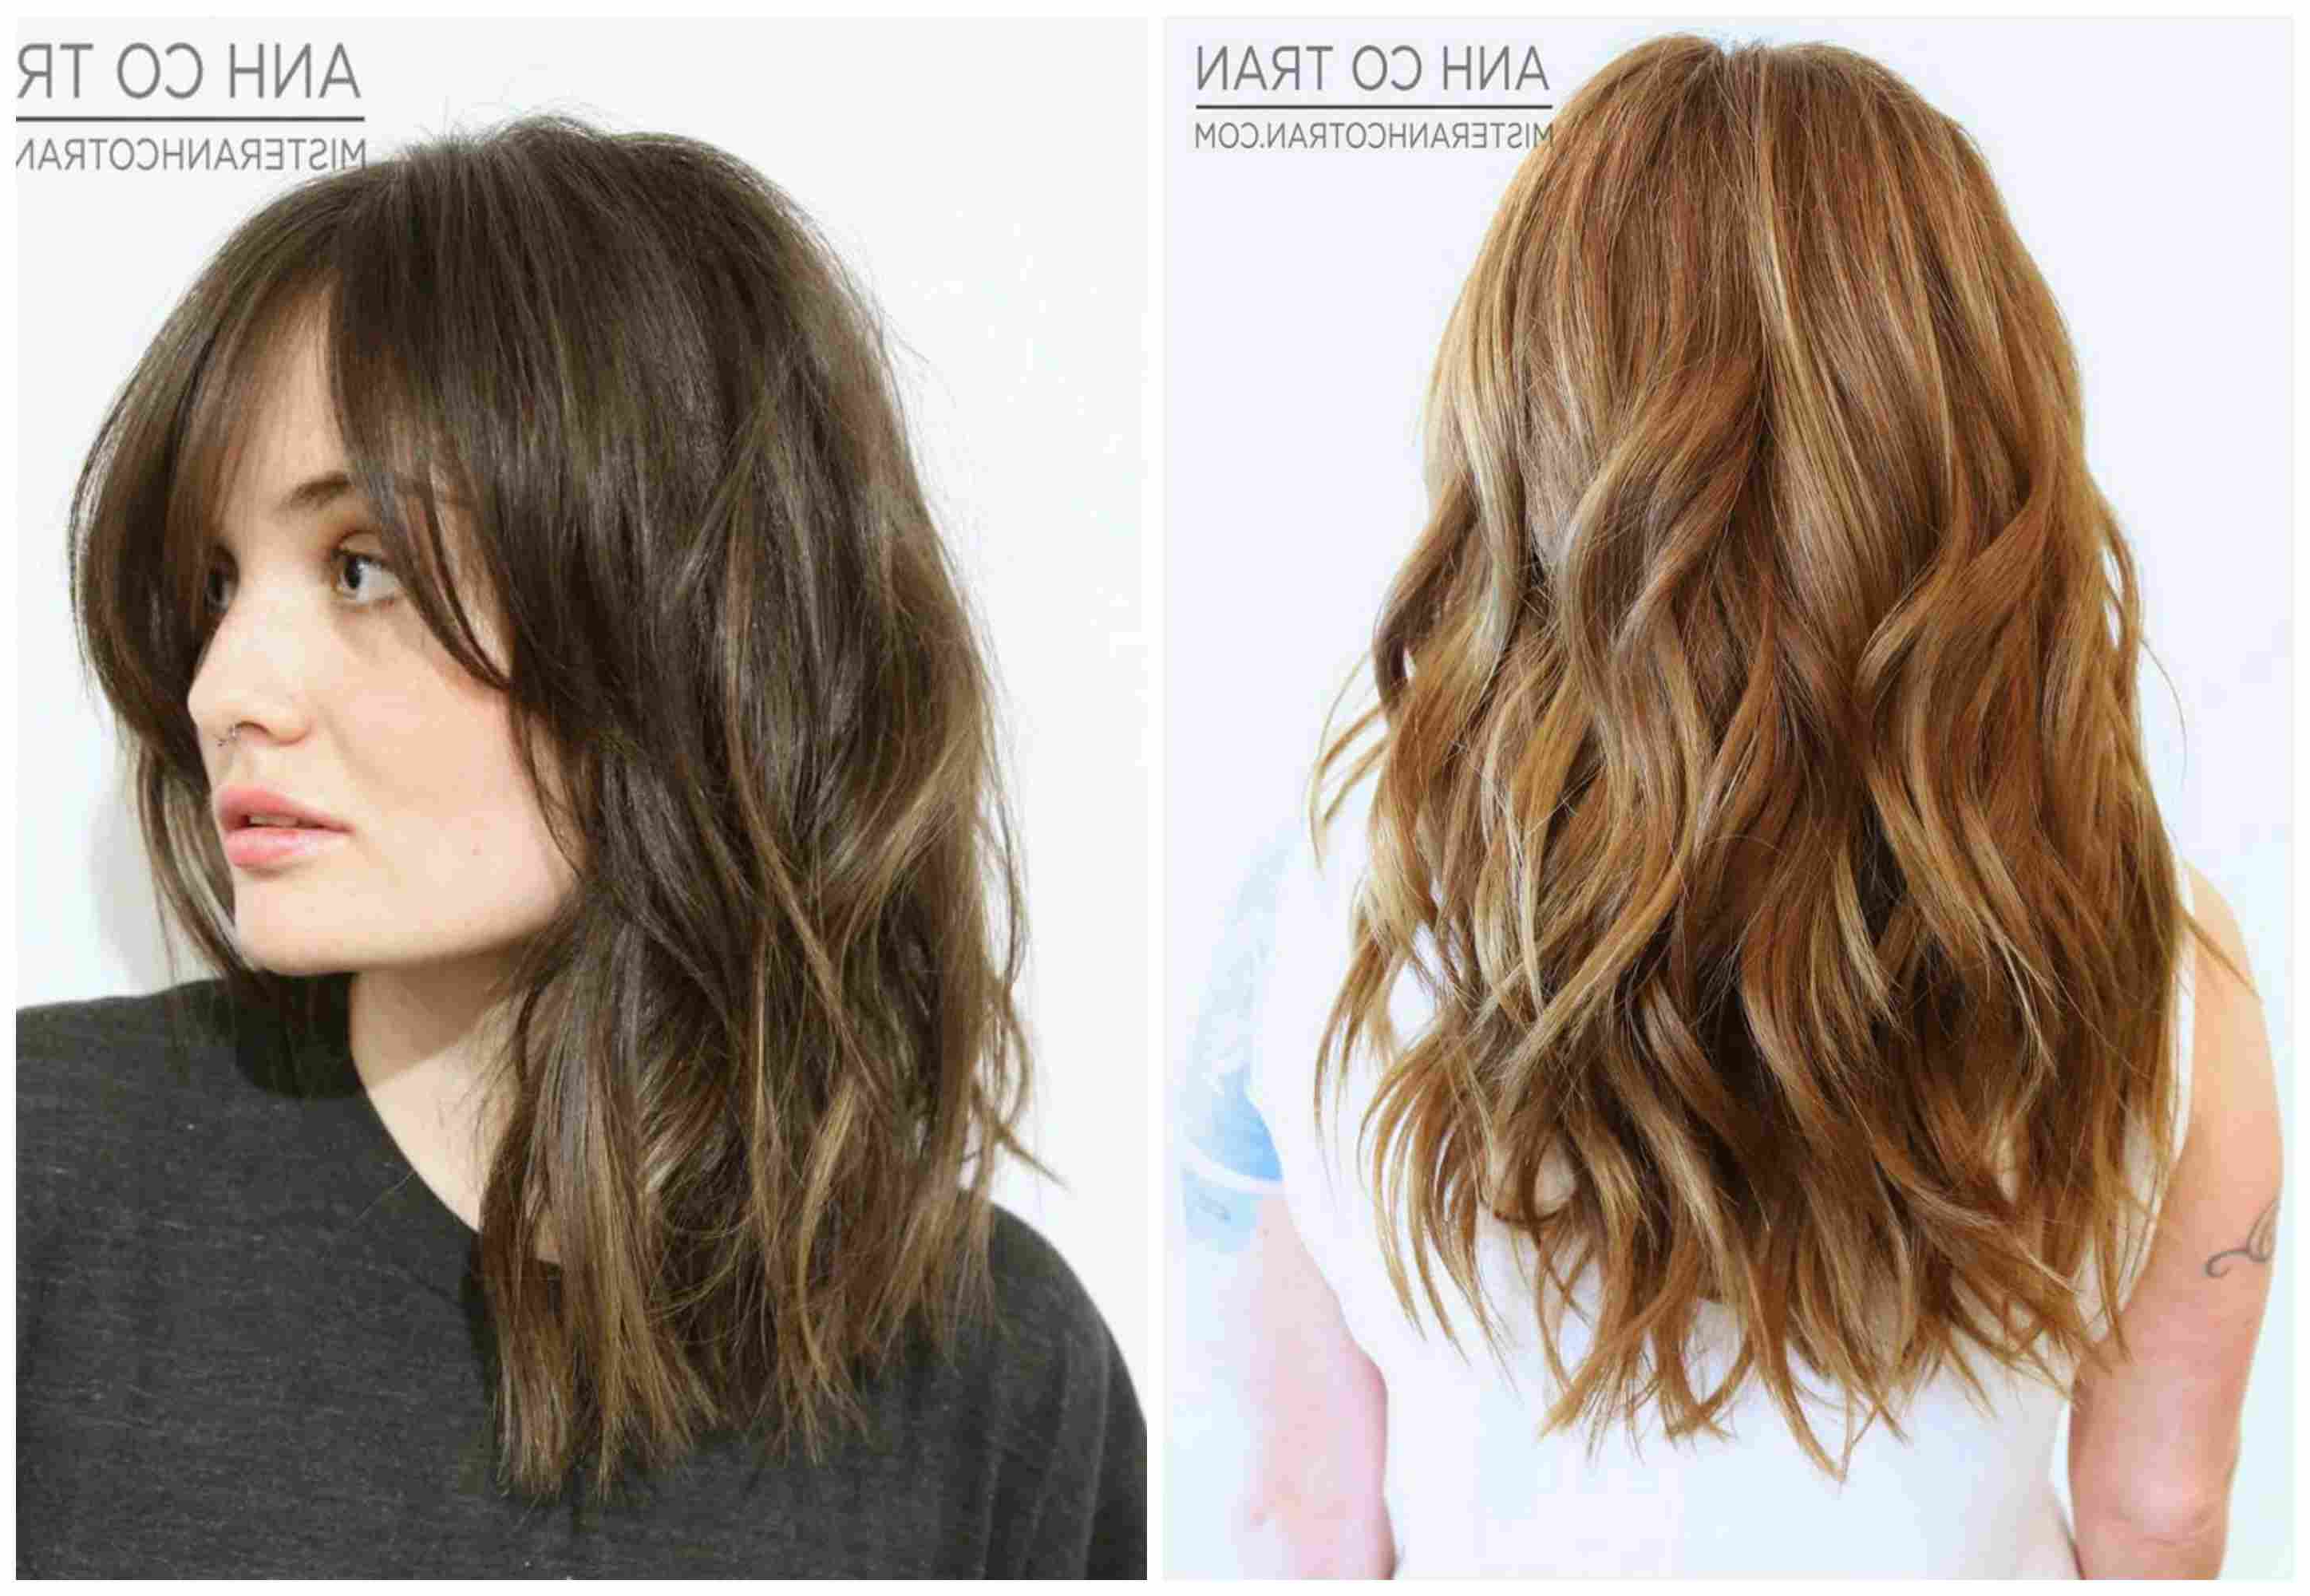 Long Wavy Hair: The Best Cuts, Colors And Styles Throughout Most Popular Soft Ombre Waves Hairstyles For Asian Hair (View 3 of 20)